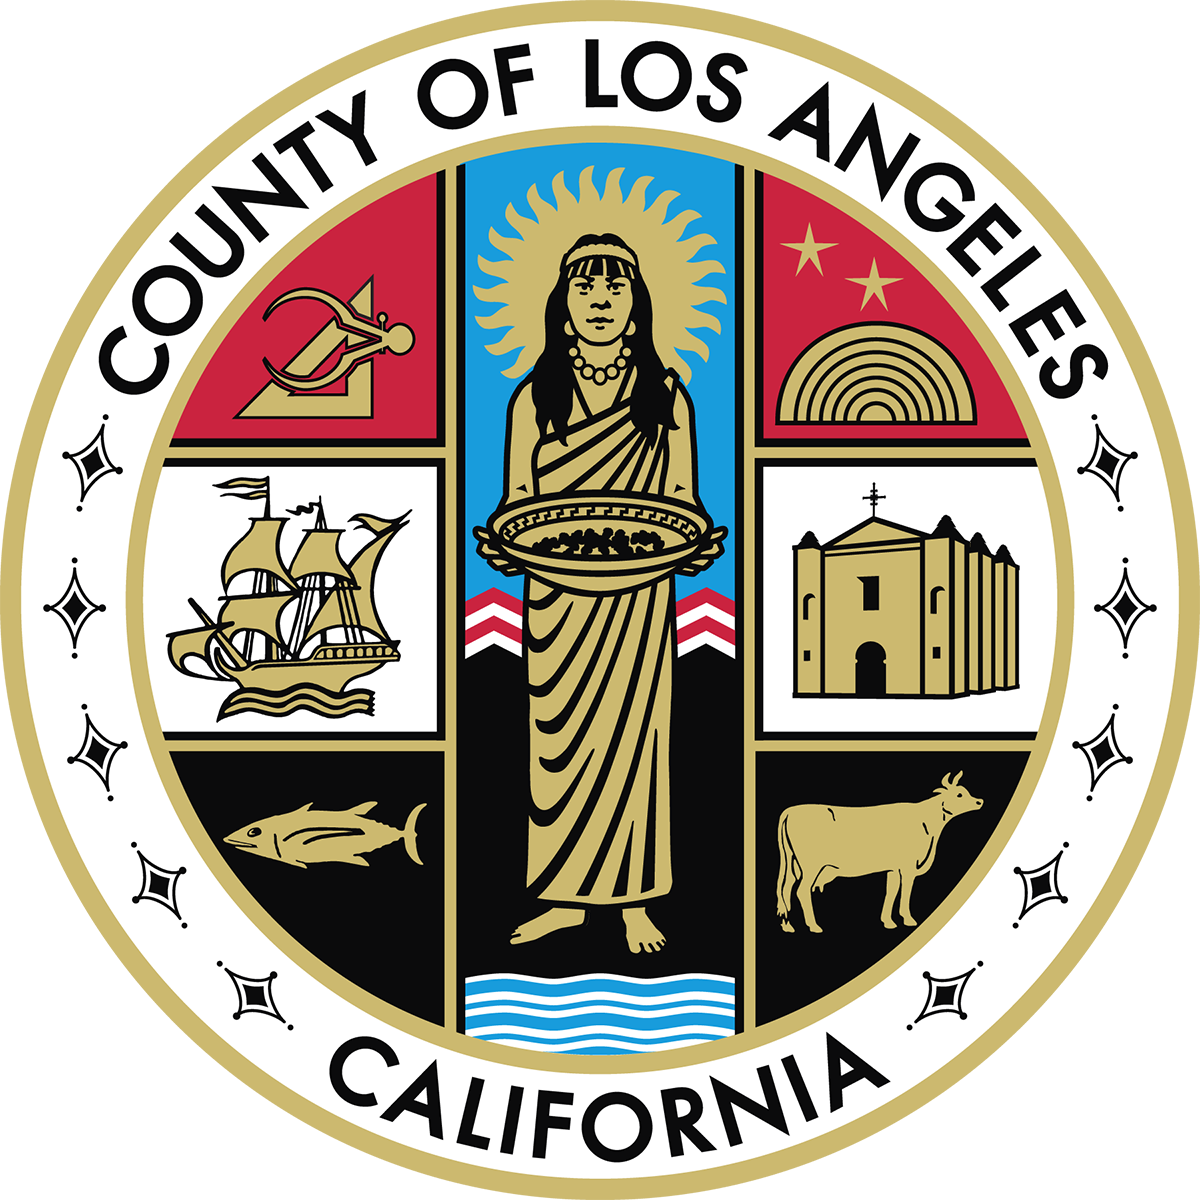 Seal_of_Los_Angeles_County__California.png